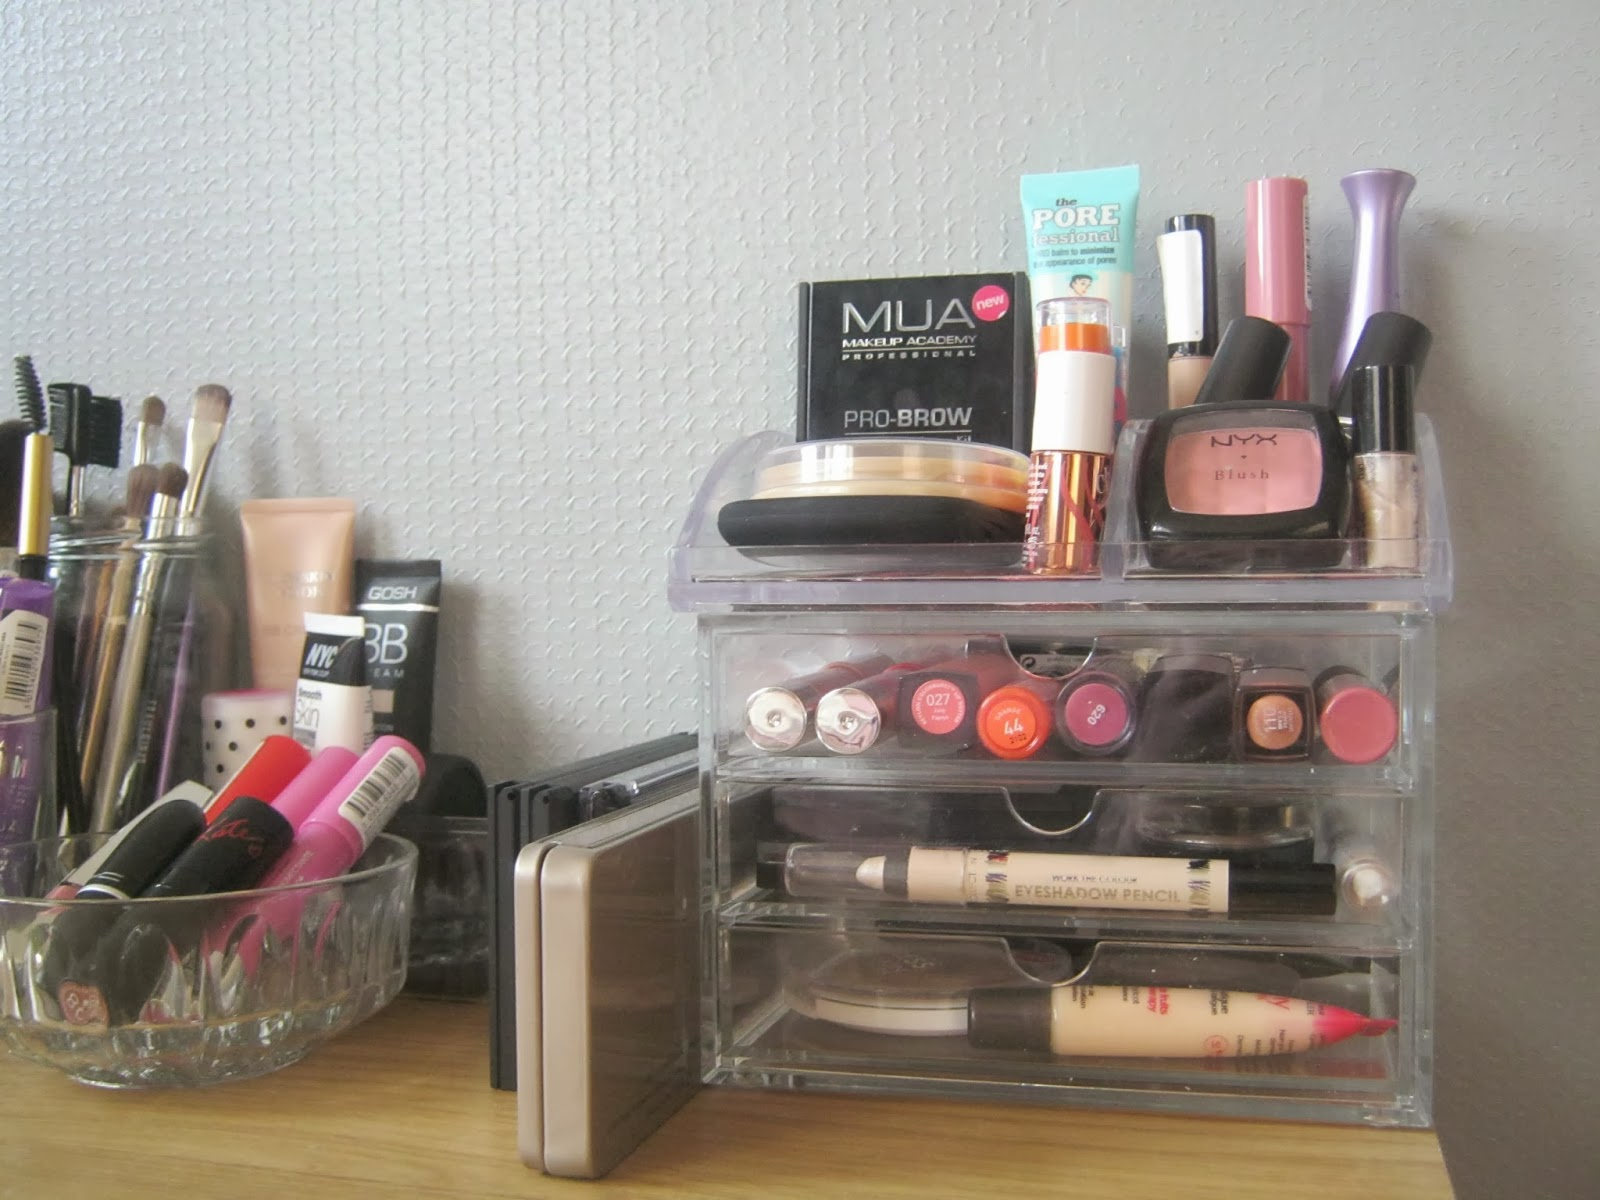 My Most Reached For Makeup Is D In Ryman Desk Organiser And Acrylic 3 Drawer Chest That Arrived The Post This Morning